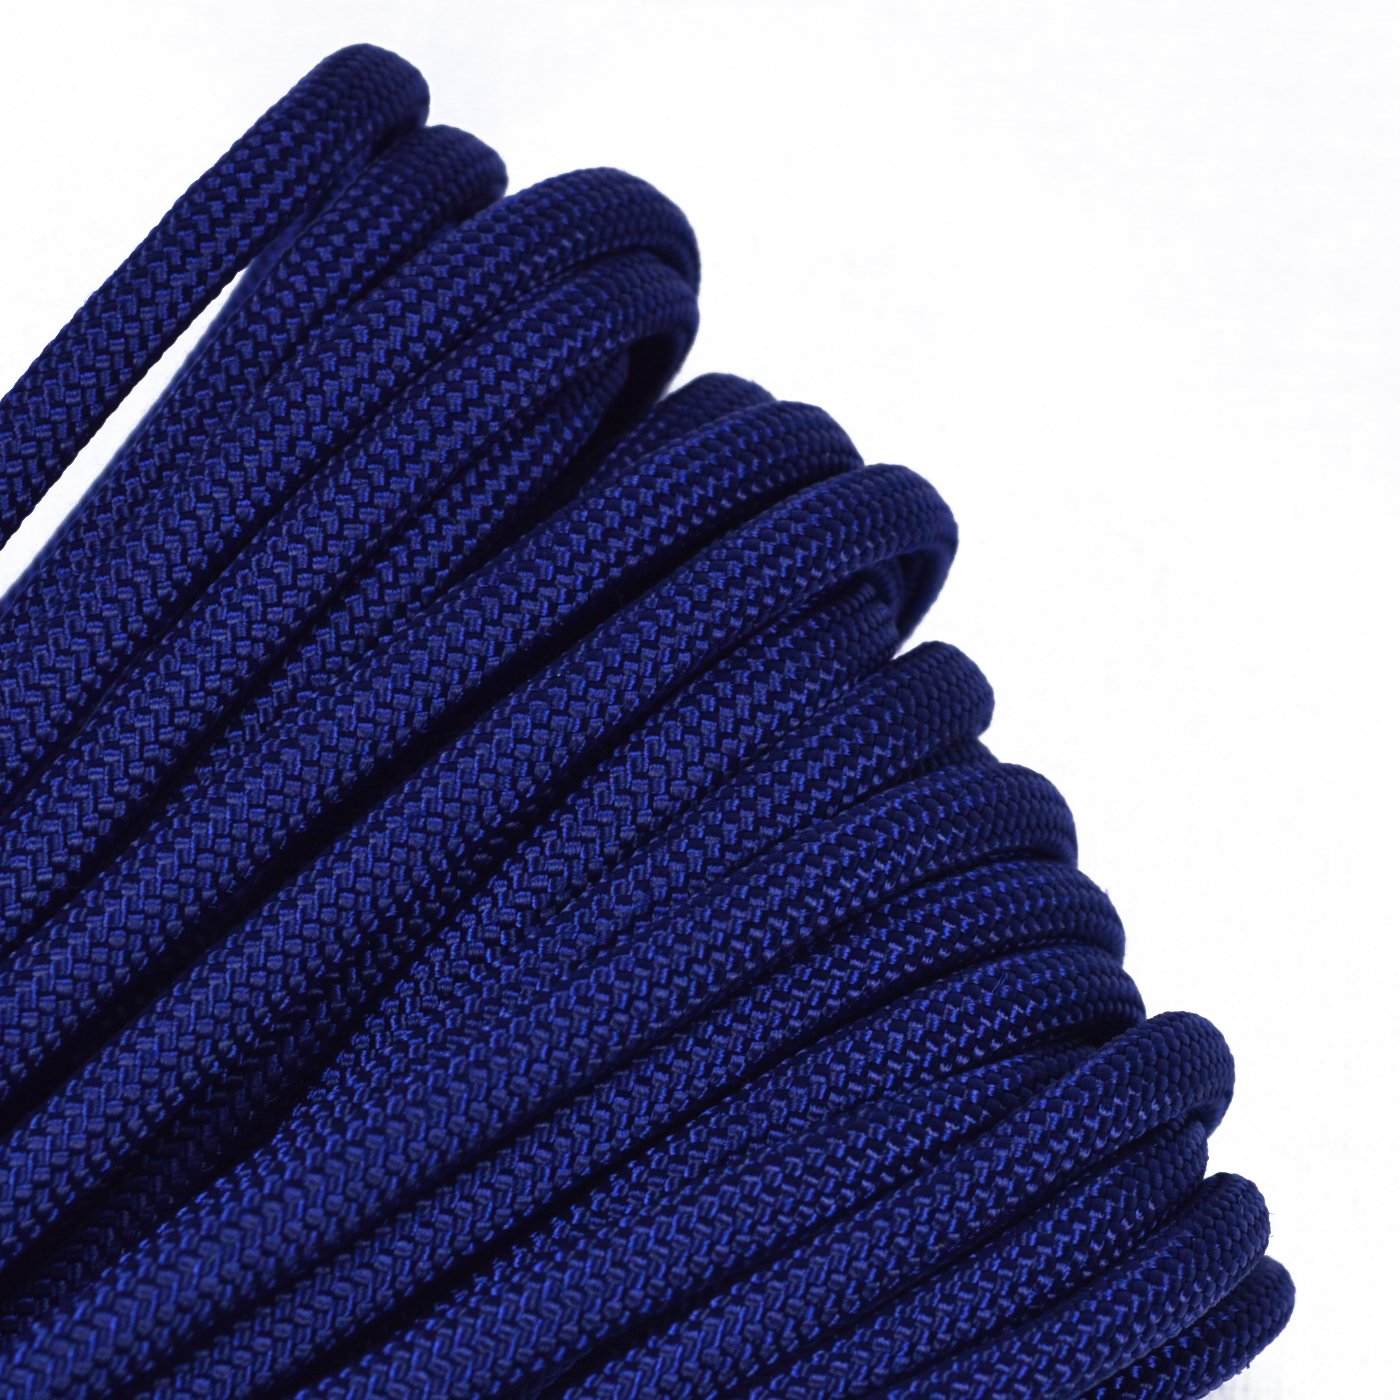 Acid Midnight Blue Mil-Spec Commercial Grade 550lb Type III Nylon Paracord - 50 Feet